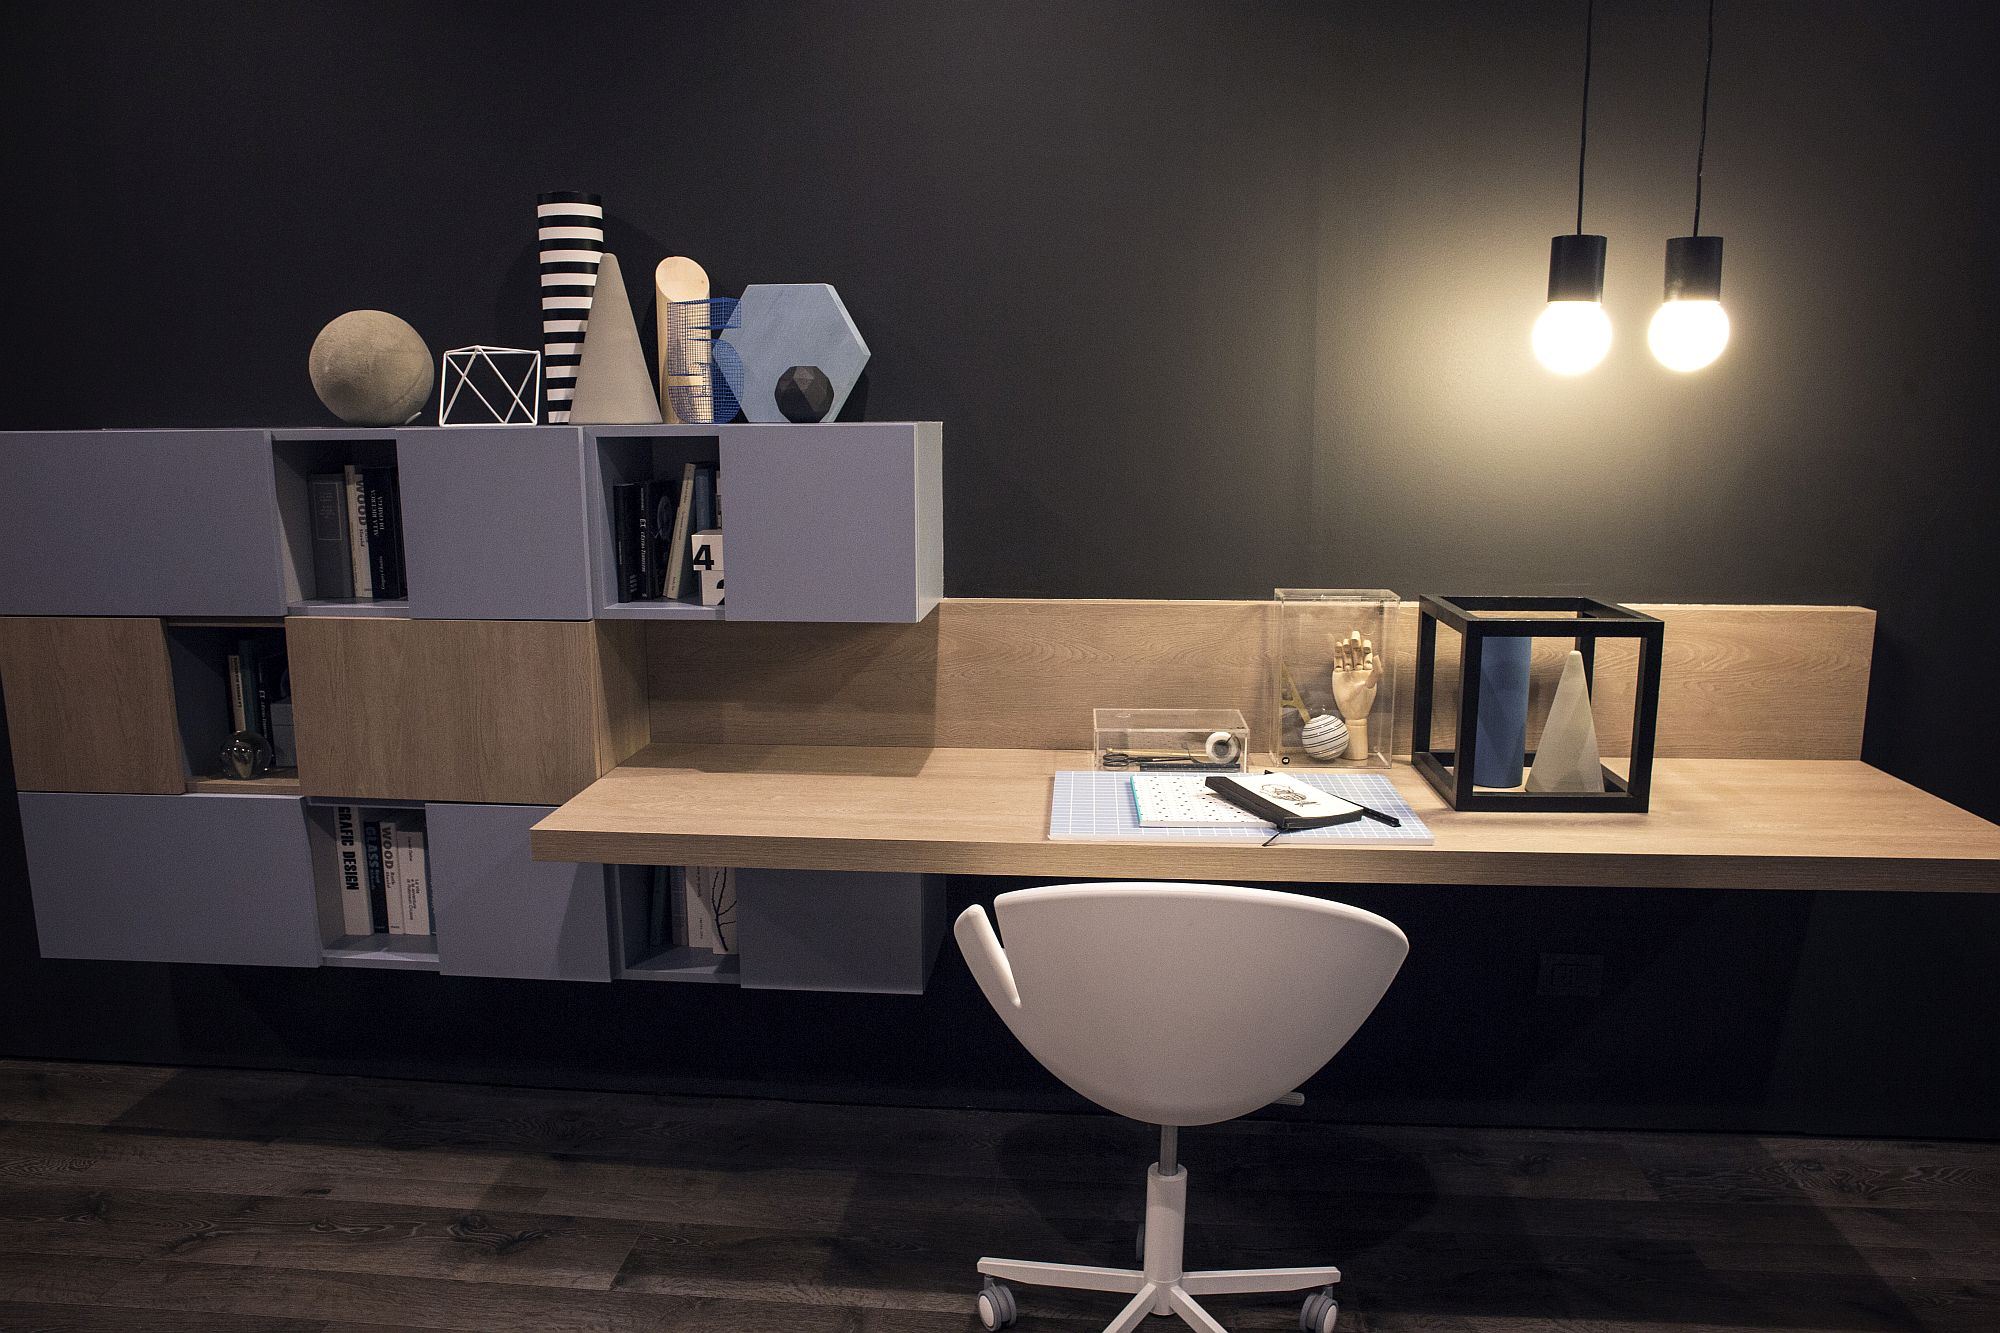 Simple and exquisite lighting for the modern home office